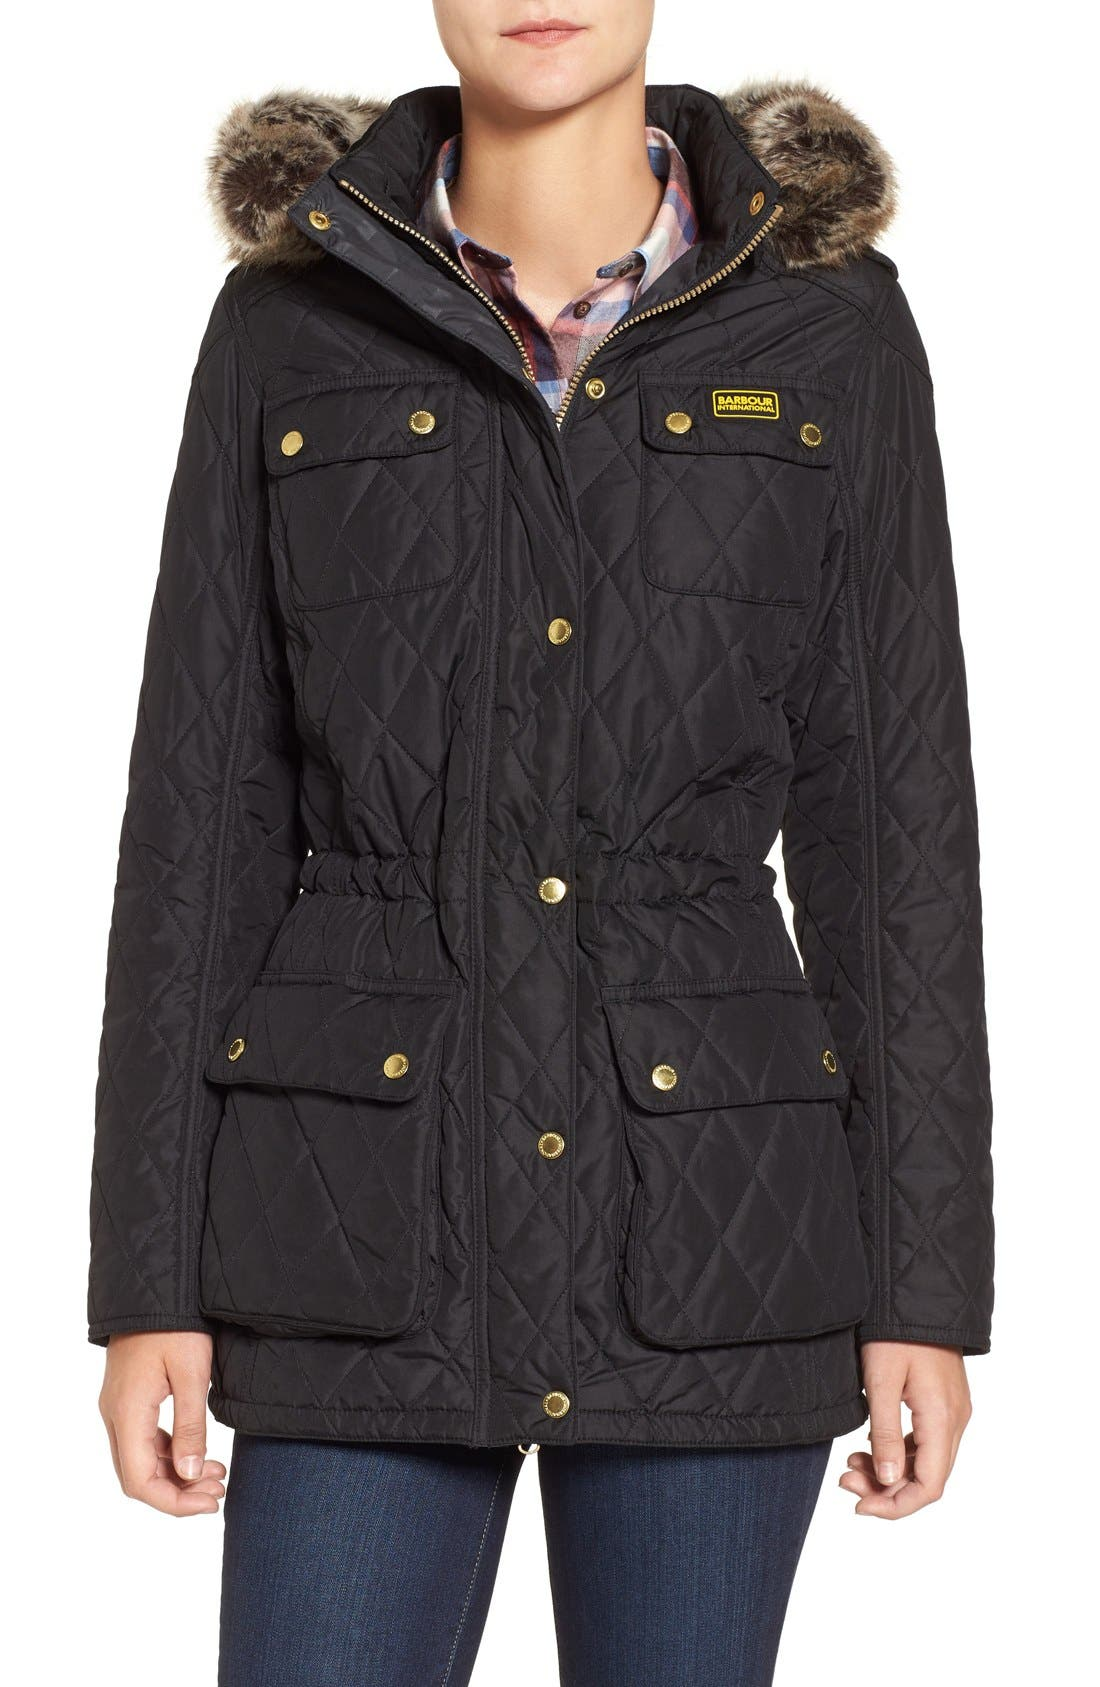 Alternate Image 1 Selected - Barbour International Enduro Quilted Jacket with Faux Fur Trim Hood